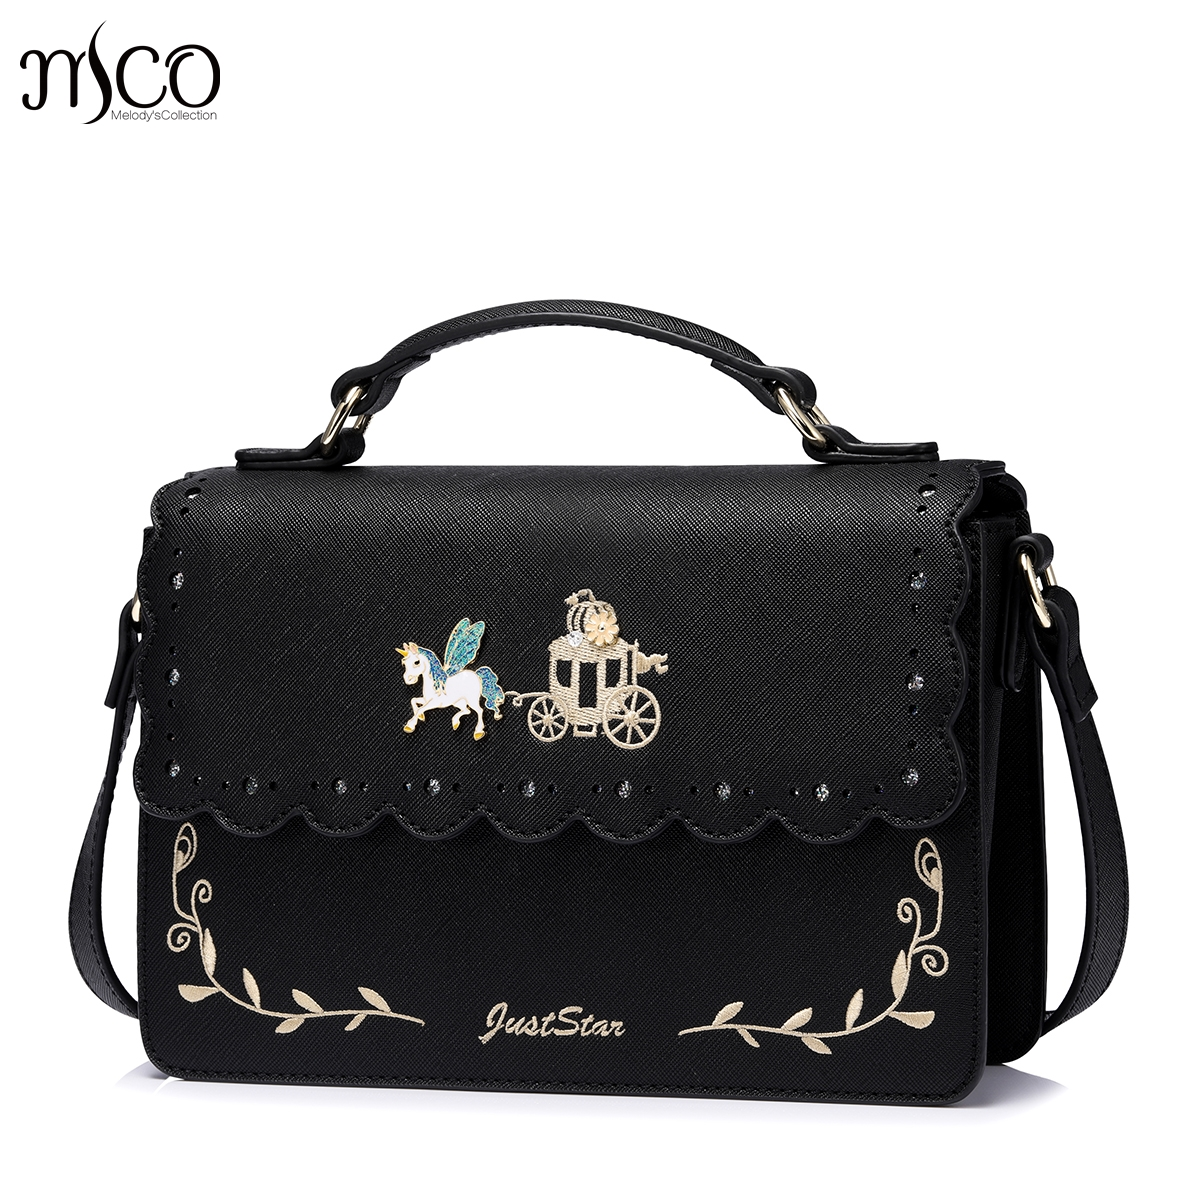 Brand Pumpkin Cart  Fairy Tales Purse Crossbody Shoulder Women Bag Clutch Female Handbags Sac a Main Femme De Marque Girls brand pu leather fairy tales purse crossbody shoulder women bag clutch female handbags sac a main femme de marque girls